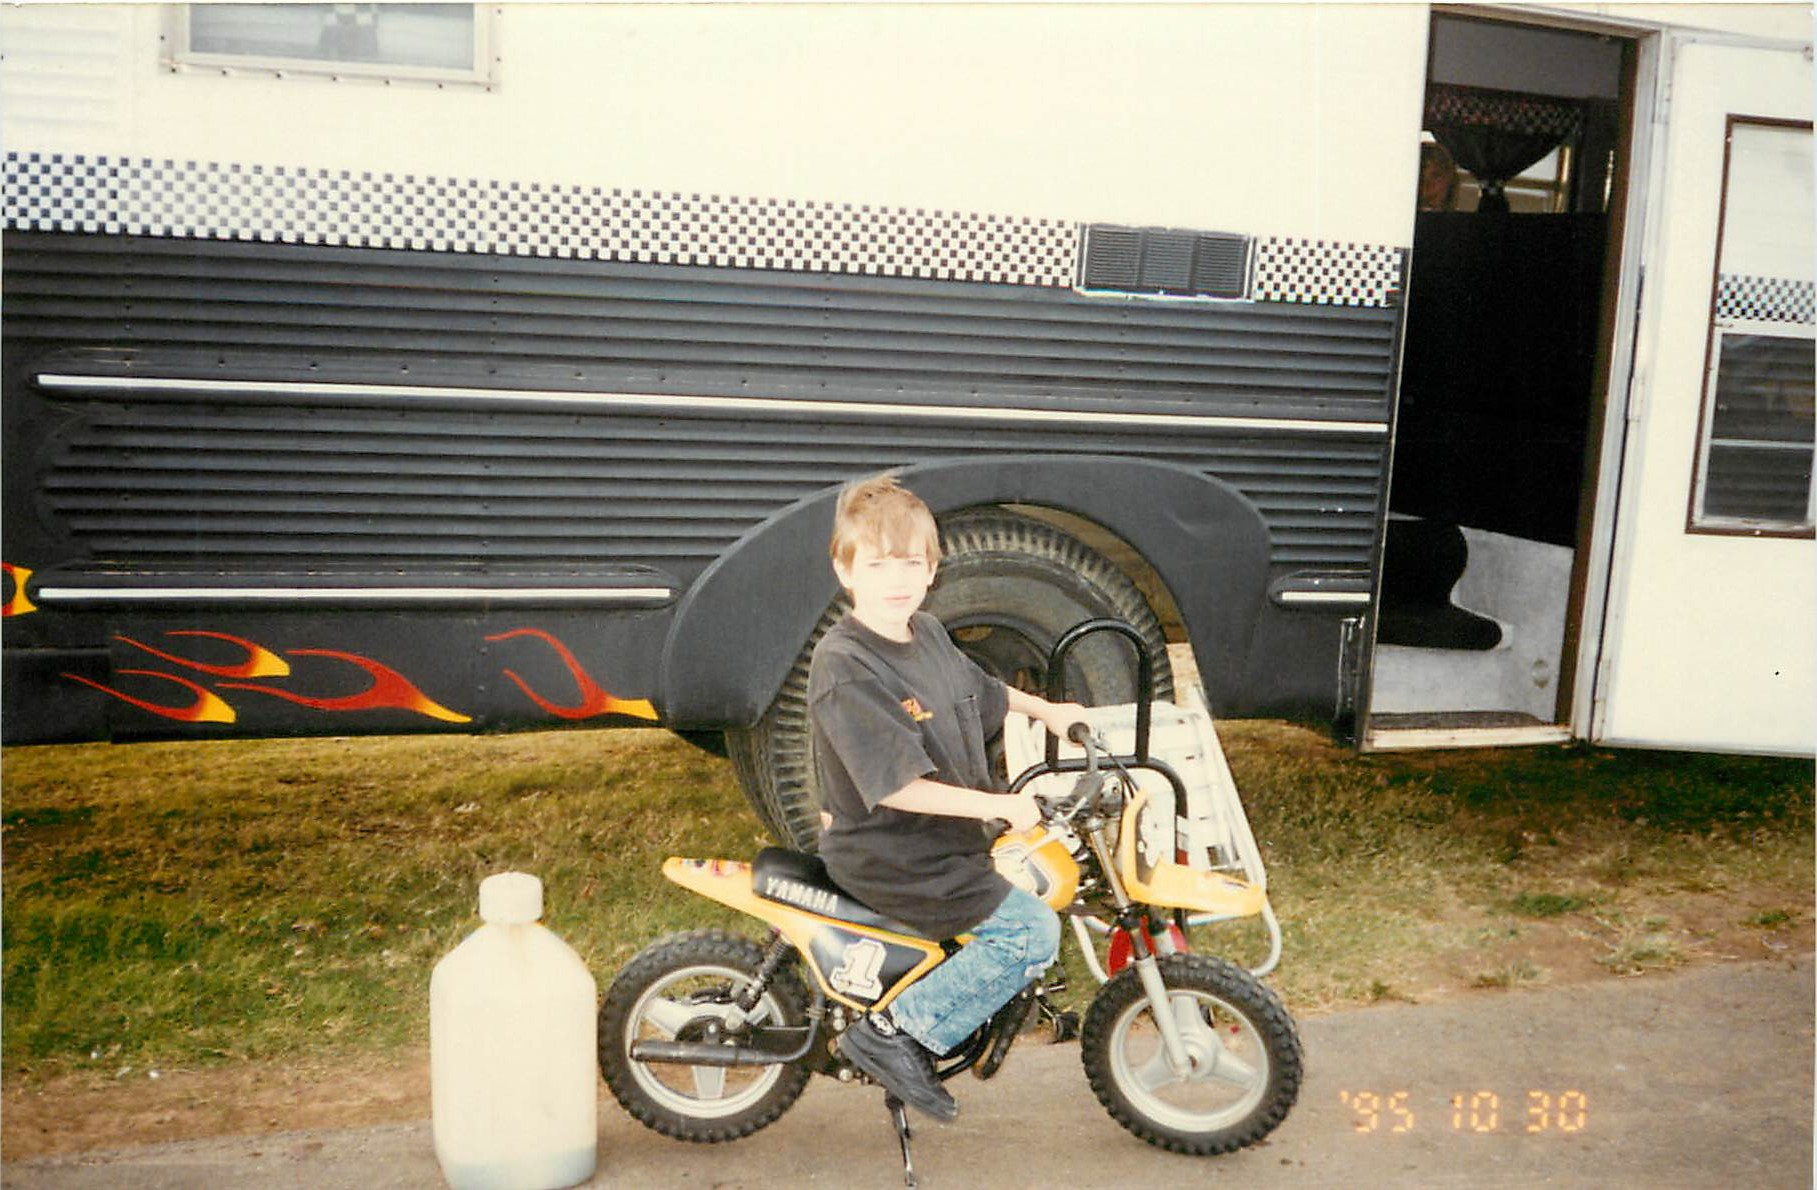 Dane 1995 on motorcycle